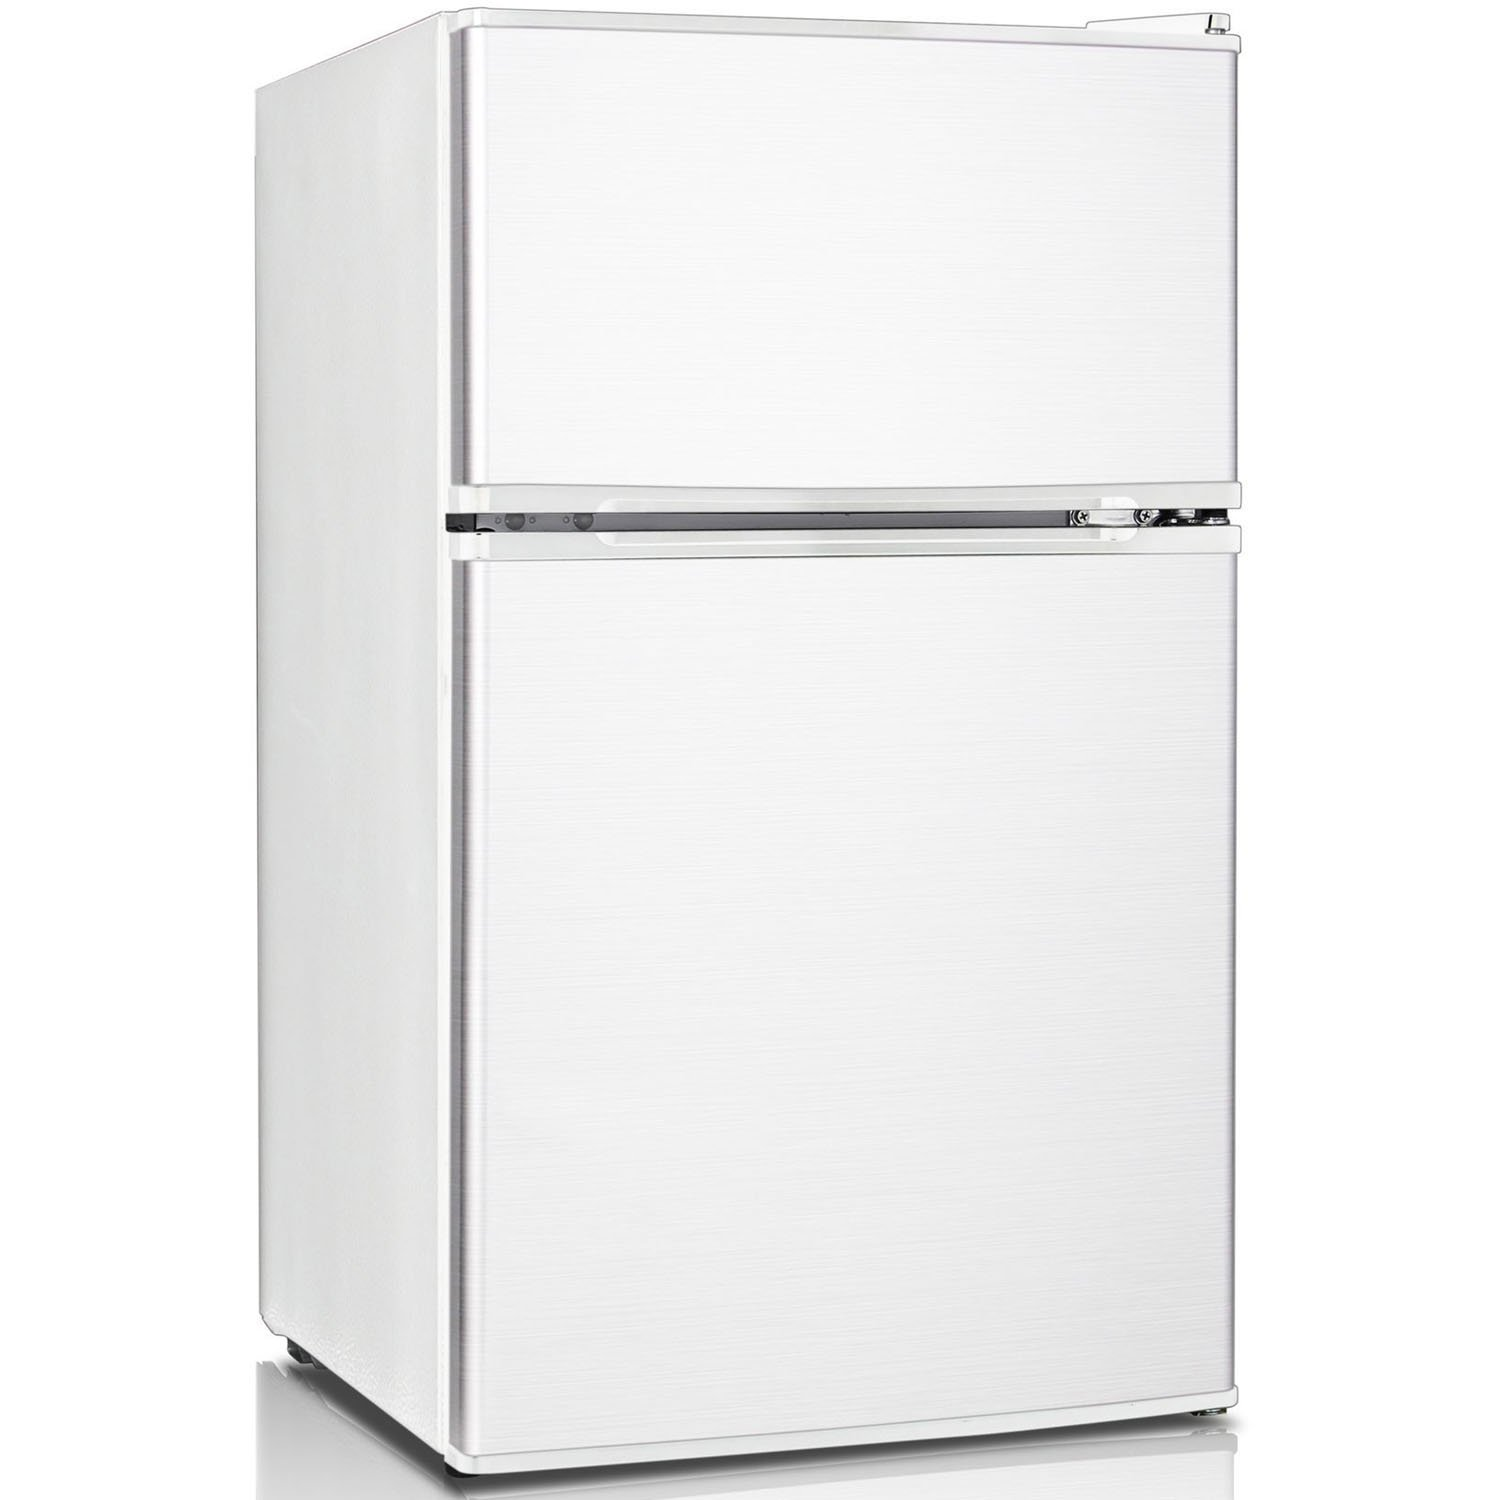 Home for the home marshall fridge - Amazon Com Keystone Kstrc312cw Compact 2 Door Refrigerator Freezer 3 1 Cubic Feet White Appliances